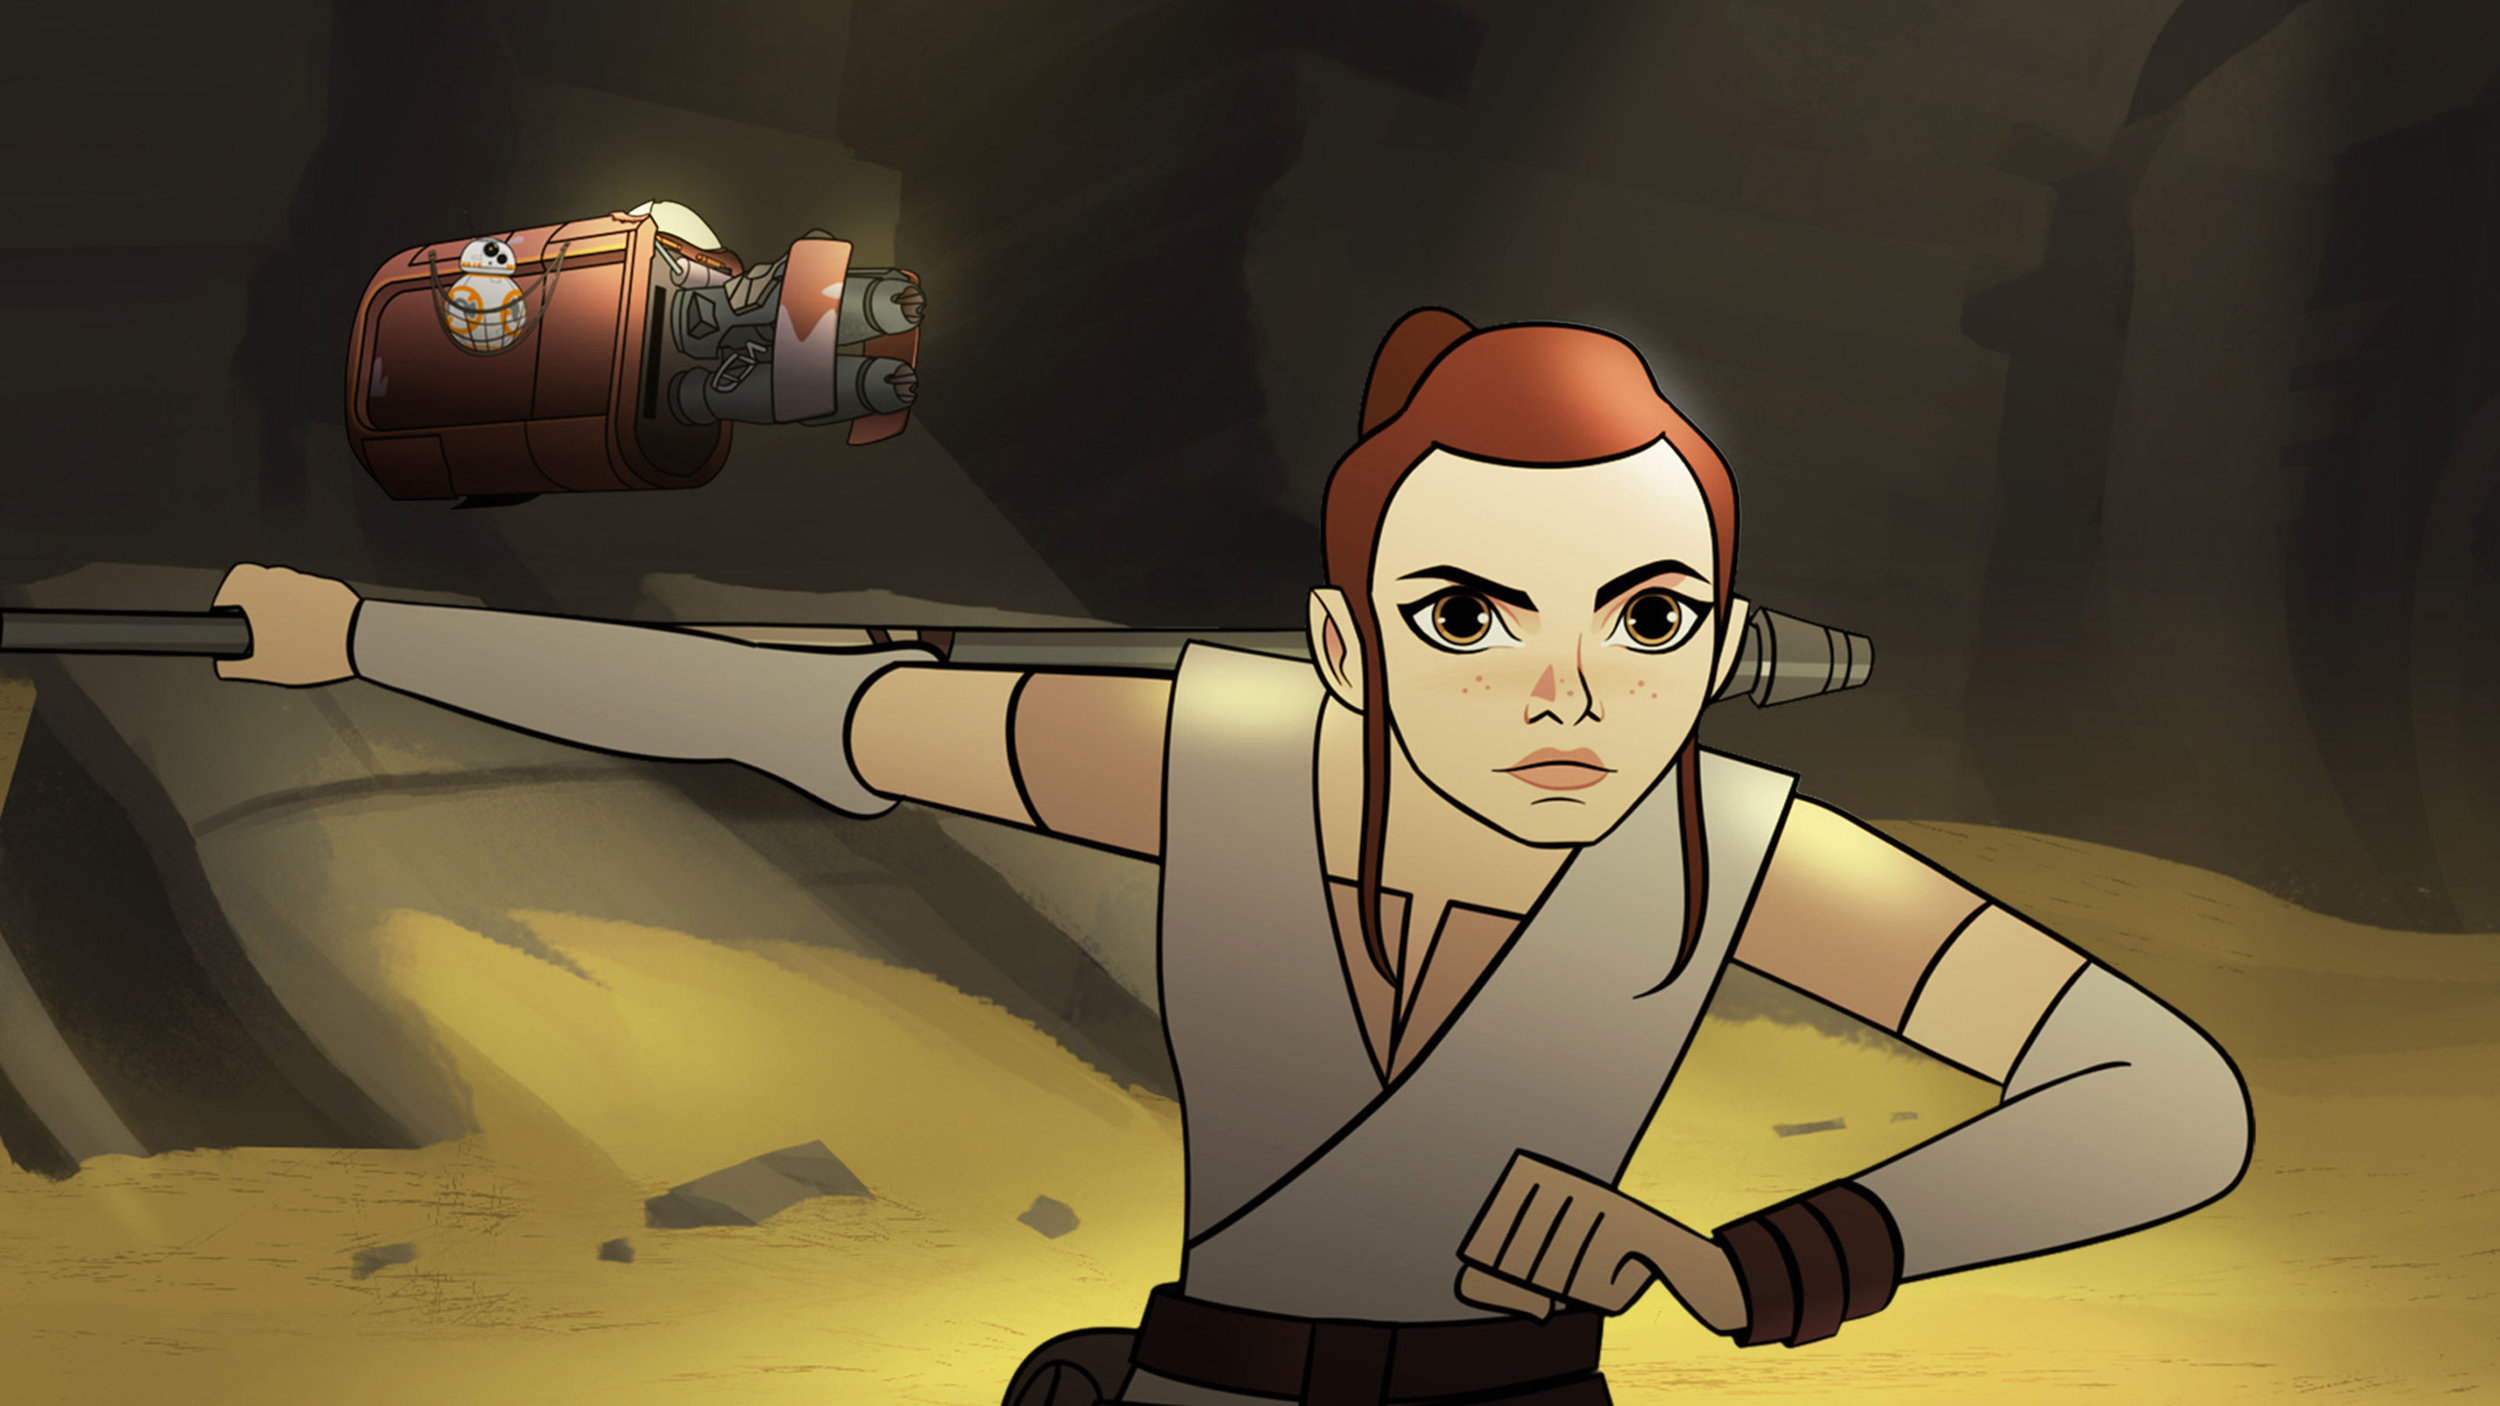 star-wars-forces-of-destiny-animated-shorts-will-focus-on-the-female-heroes-of-the-star-wars-universe1